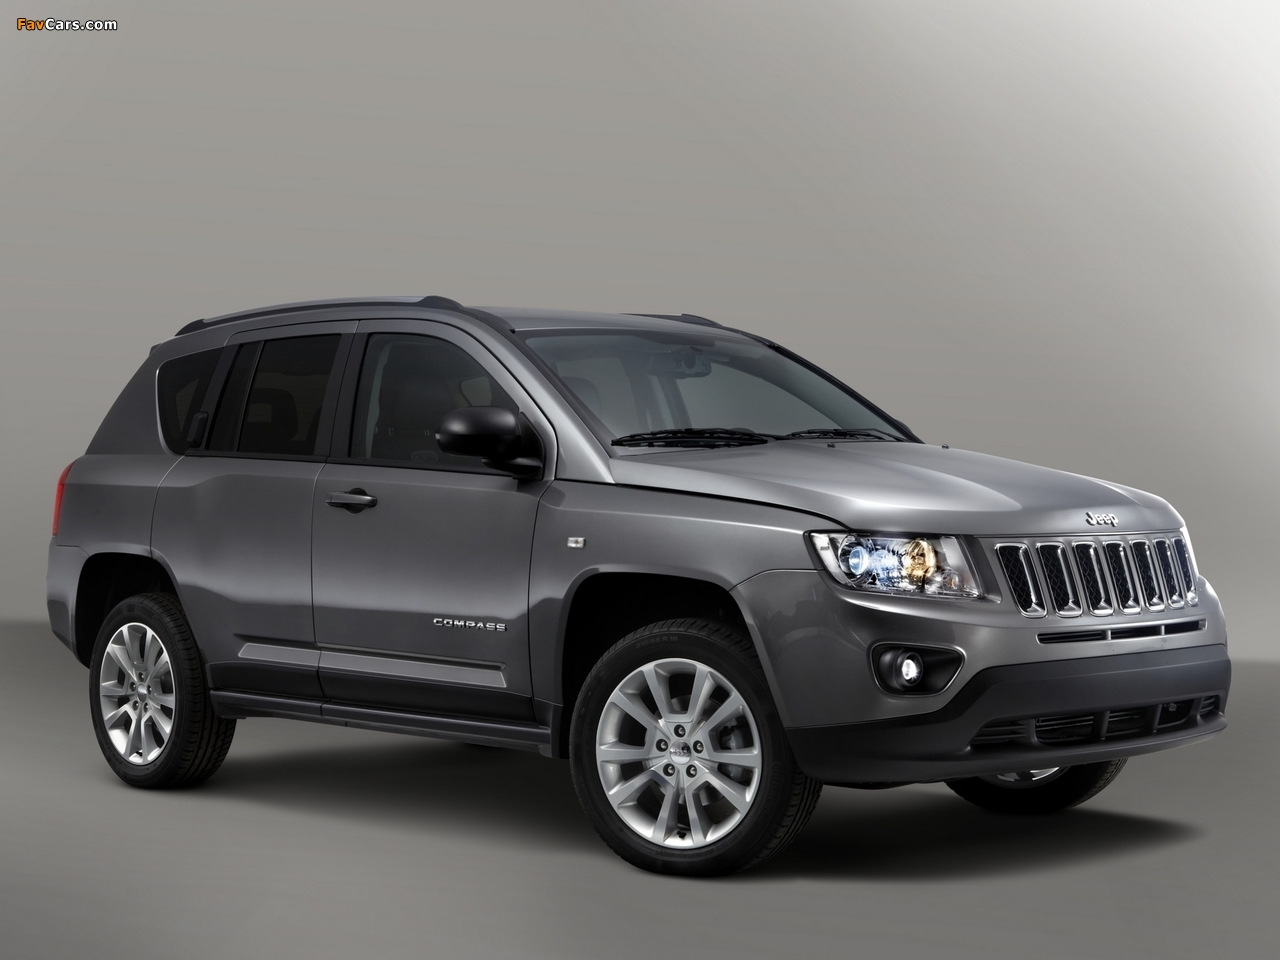 Jeep Compass Overland 2012 images (1280 x 960)